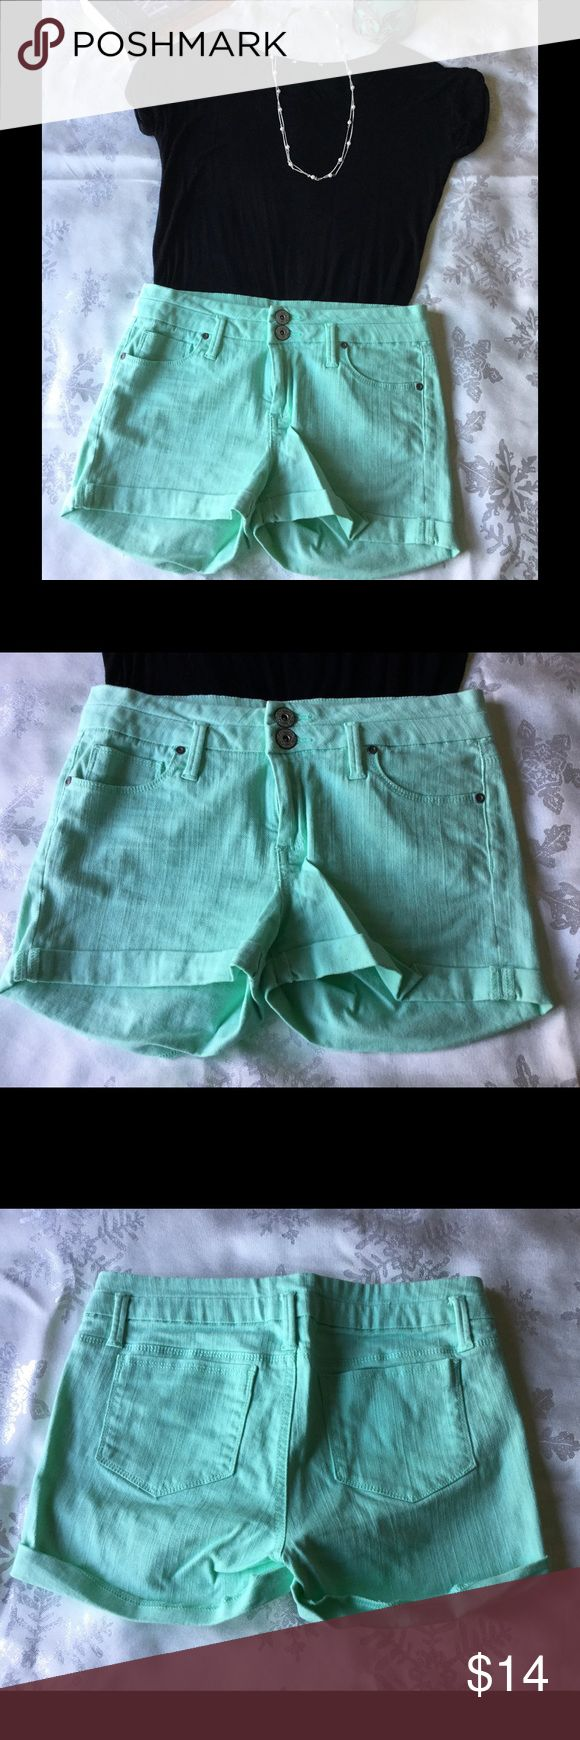 "Mint green shorts Mint green jean shorts, cuffed bottom, double button and zipper close, inseam 2 1/2"". Excellent condition. Candie's Shorts Jean Shorts"